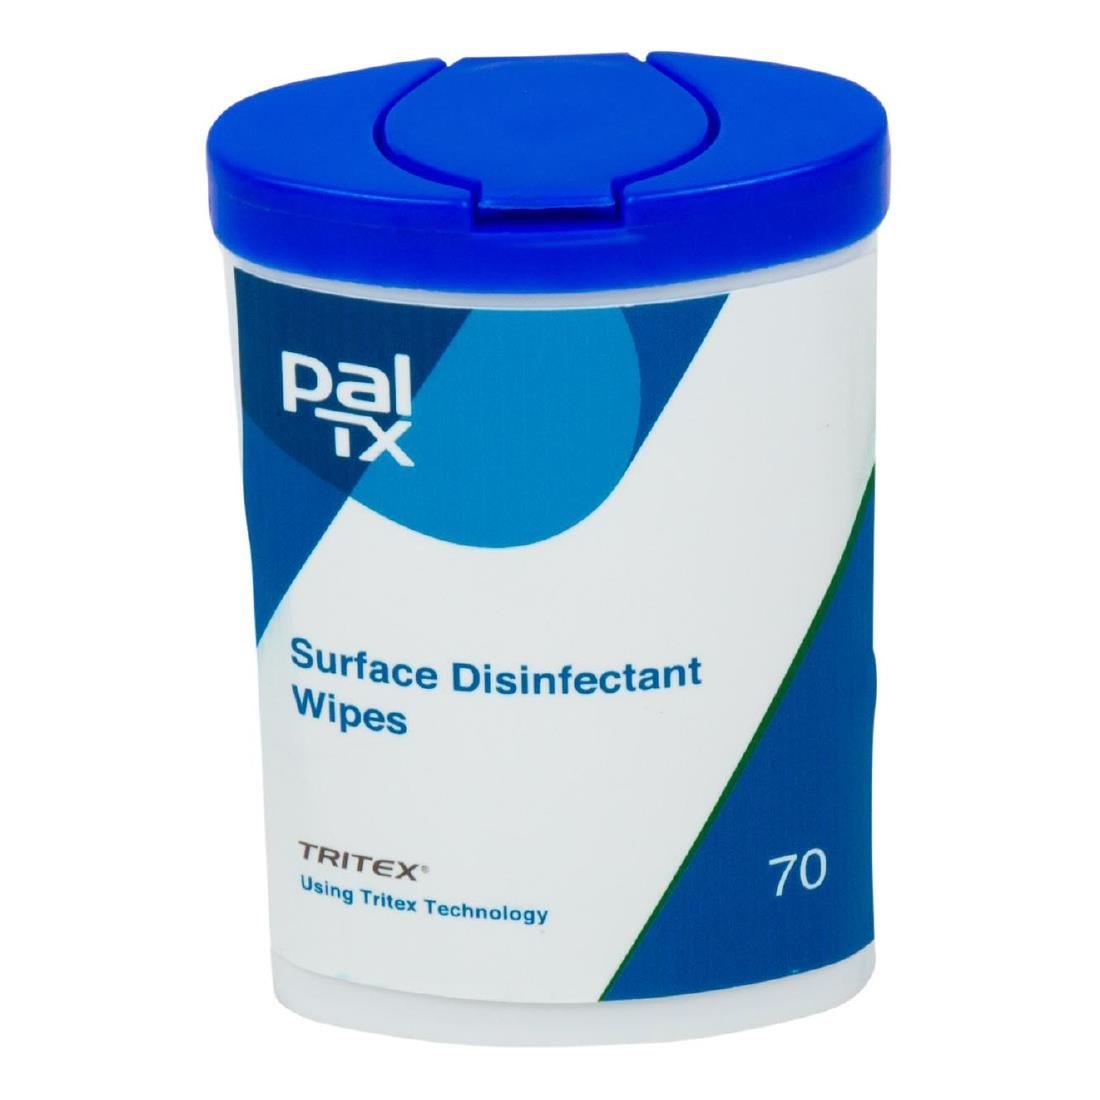 Pal TX Disinfectant Surface Wipes (12 x 70 Pack)